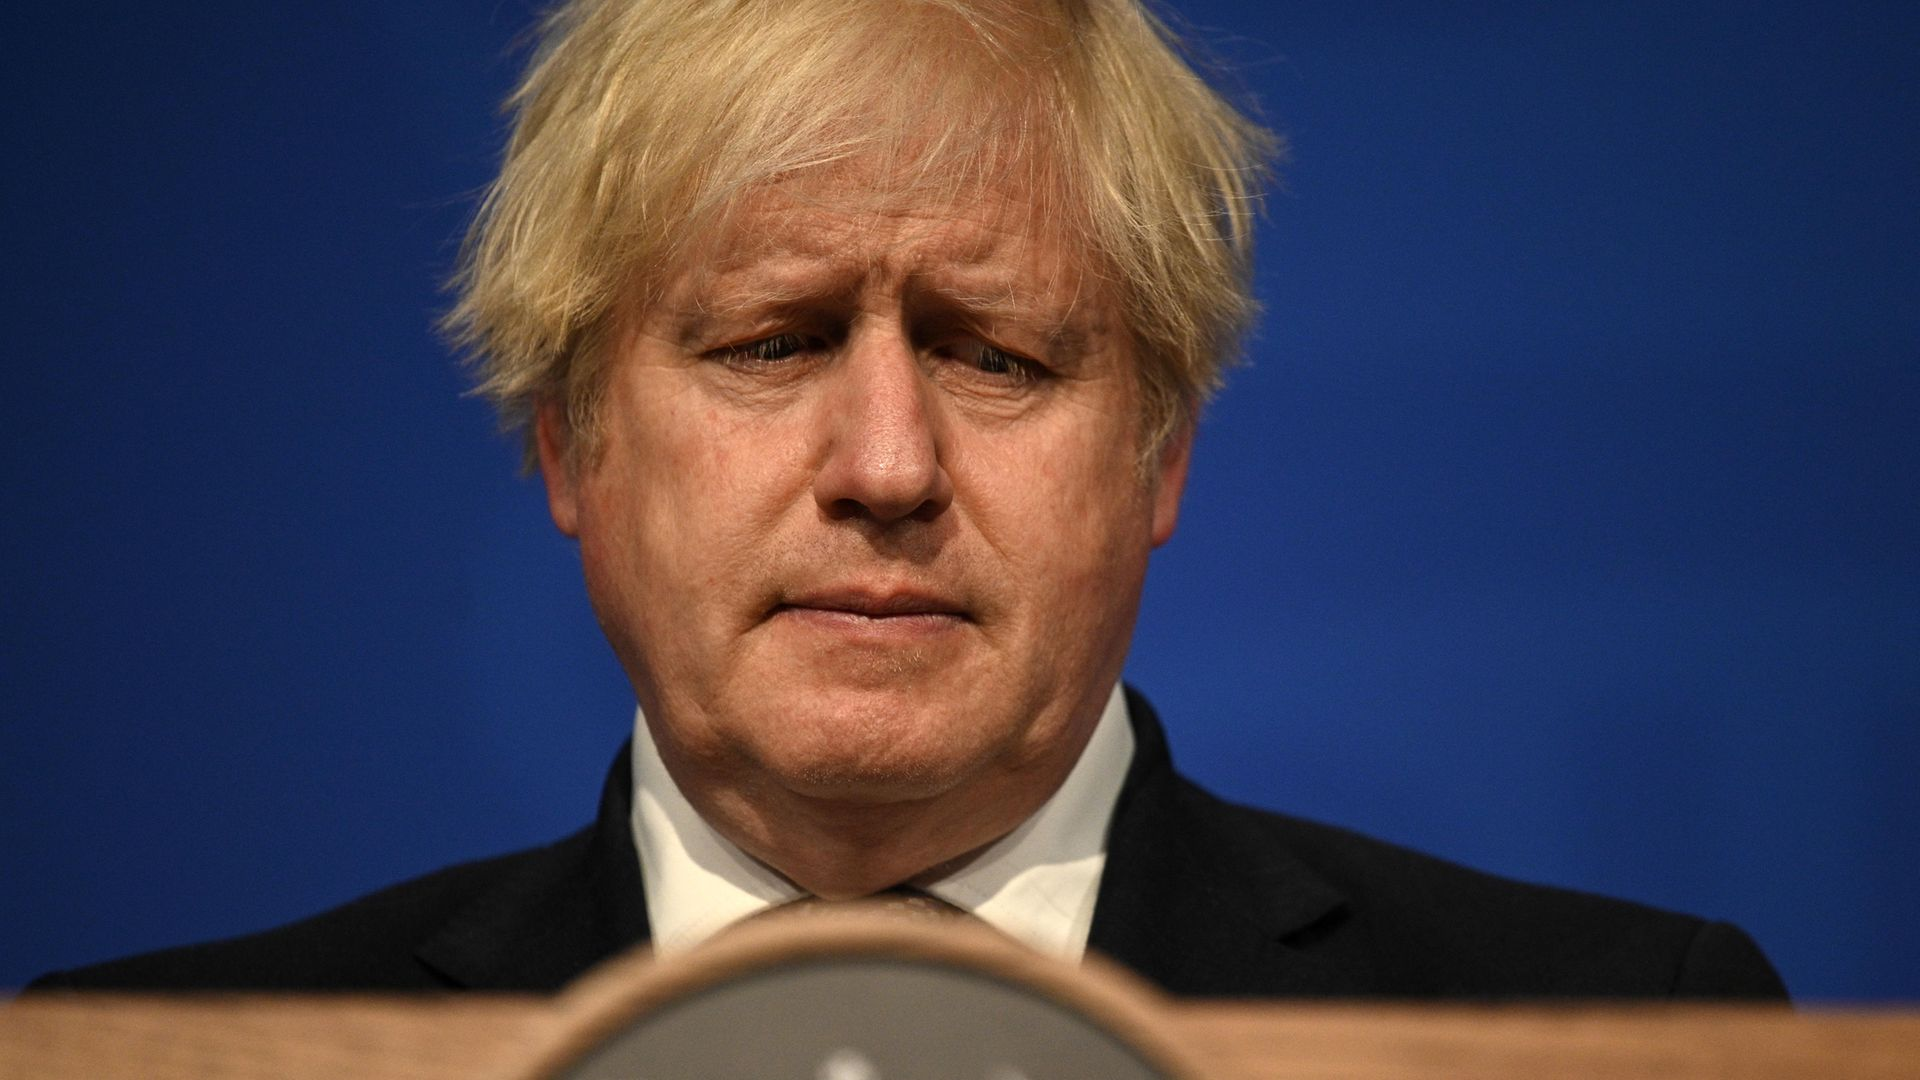 Prime Minister Boris Johnson speaking during a media briefing in Downing Street - Credit: PA